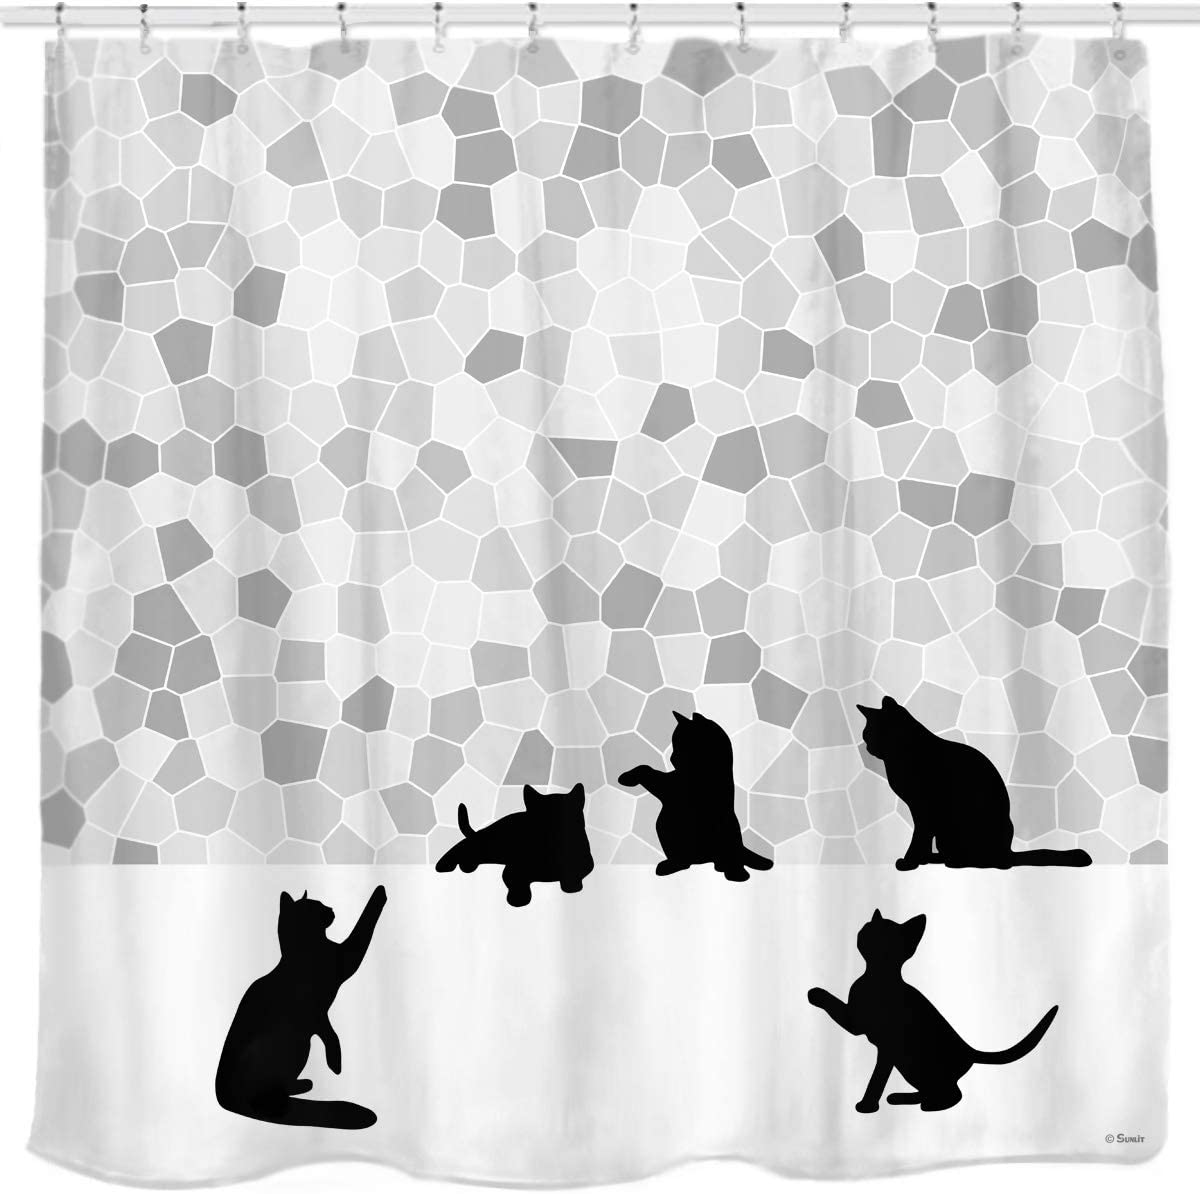 Halloween Shower Curtain Black Cat Vintage Print for Bathroom